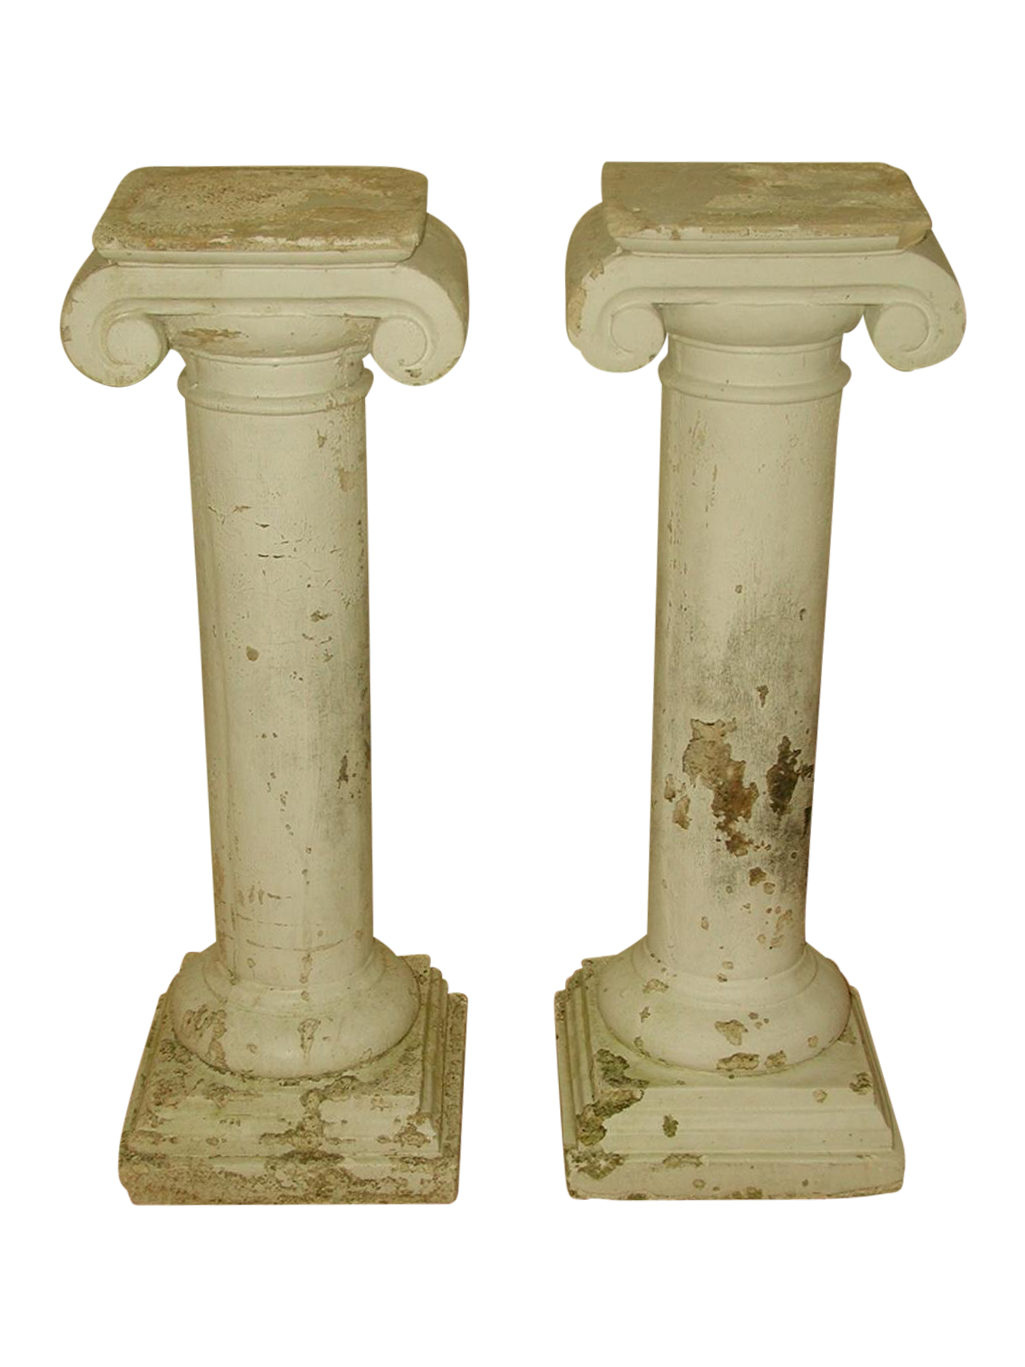 Architectural Plaster Column Table Bases a Pair Chairish : architectural plaster column table bases a pair 2186 from www.chairish.com size 1025 x 1367 png 837kB